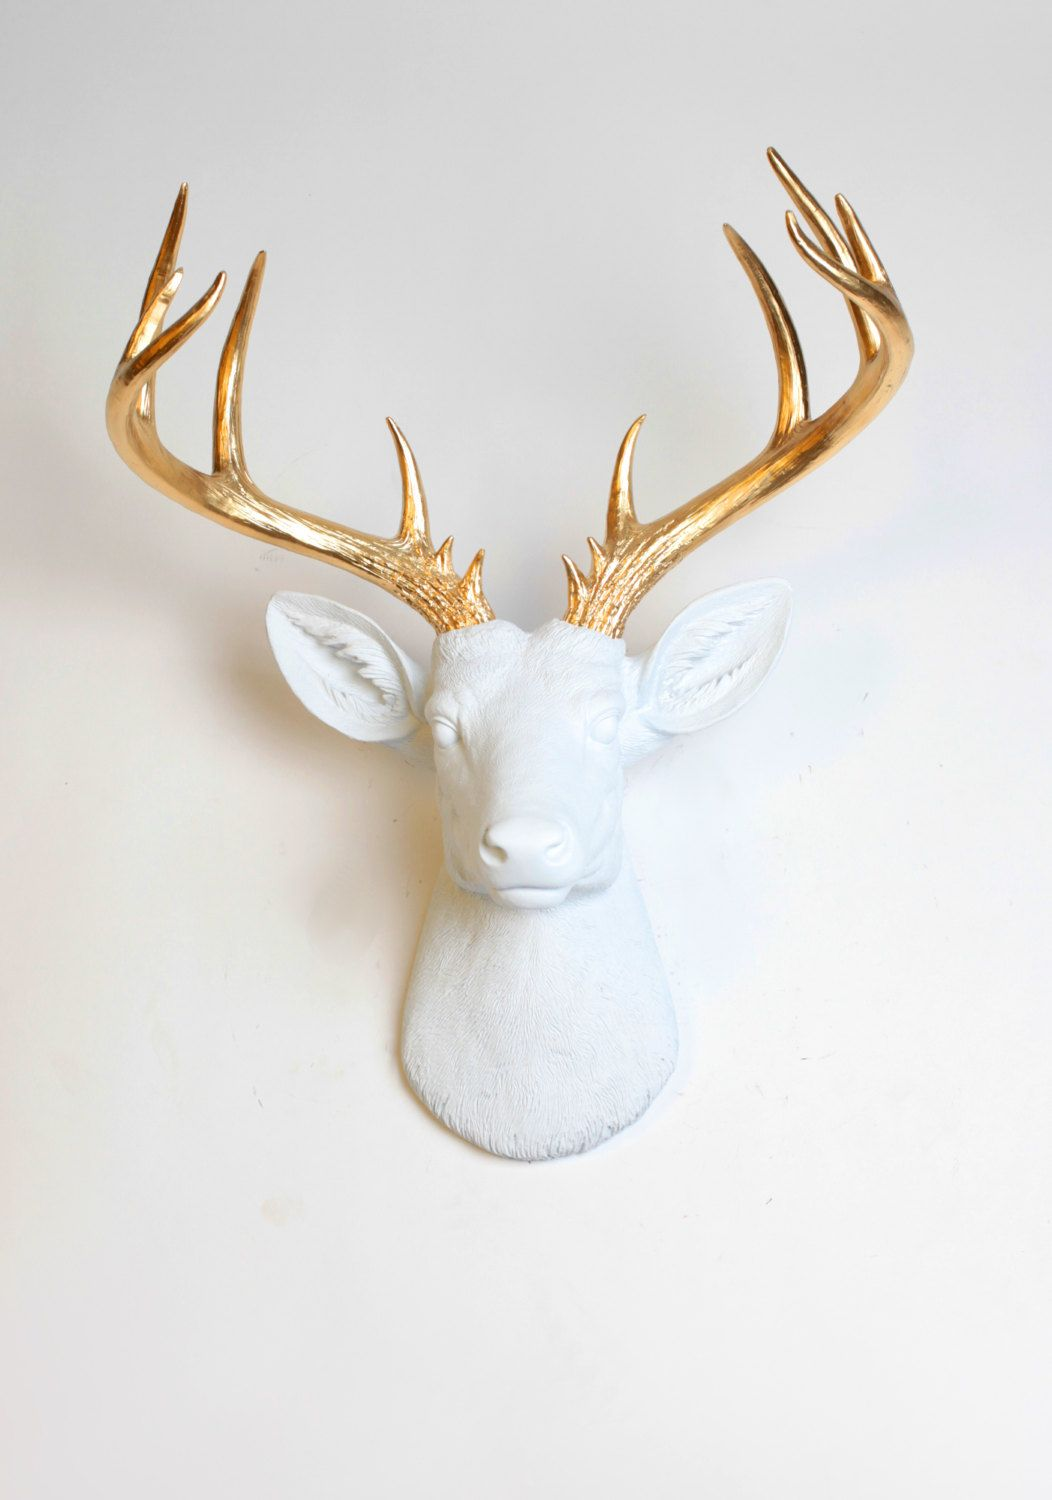 Faux Taxidermy Deer Head Wall Mount Décor The Xl Alfred Large Gold Antlers Hanging Fake Animal By White 94 99 Usd